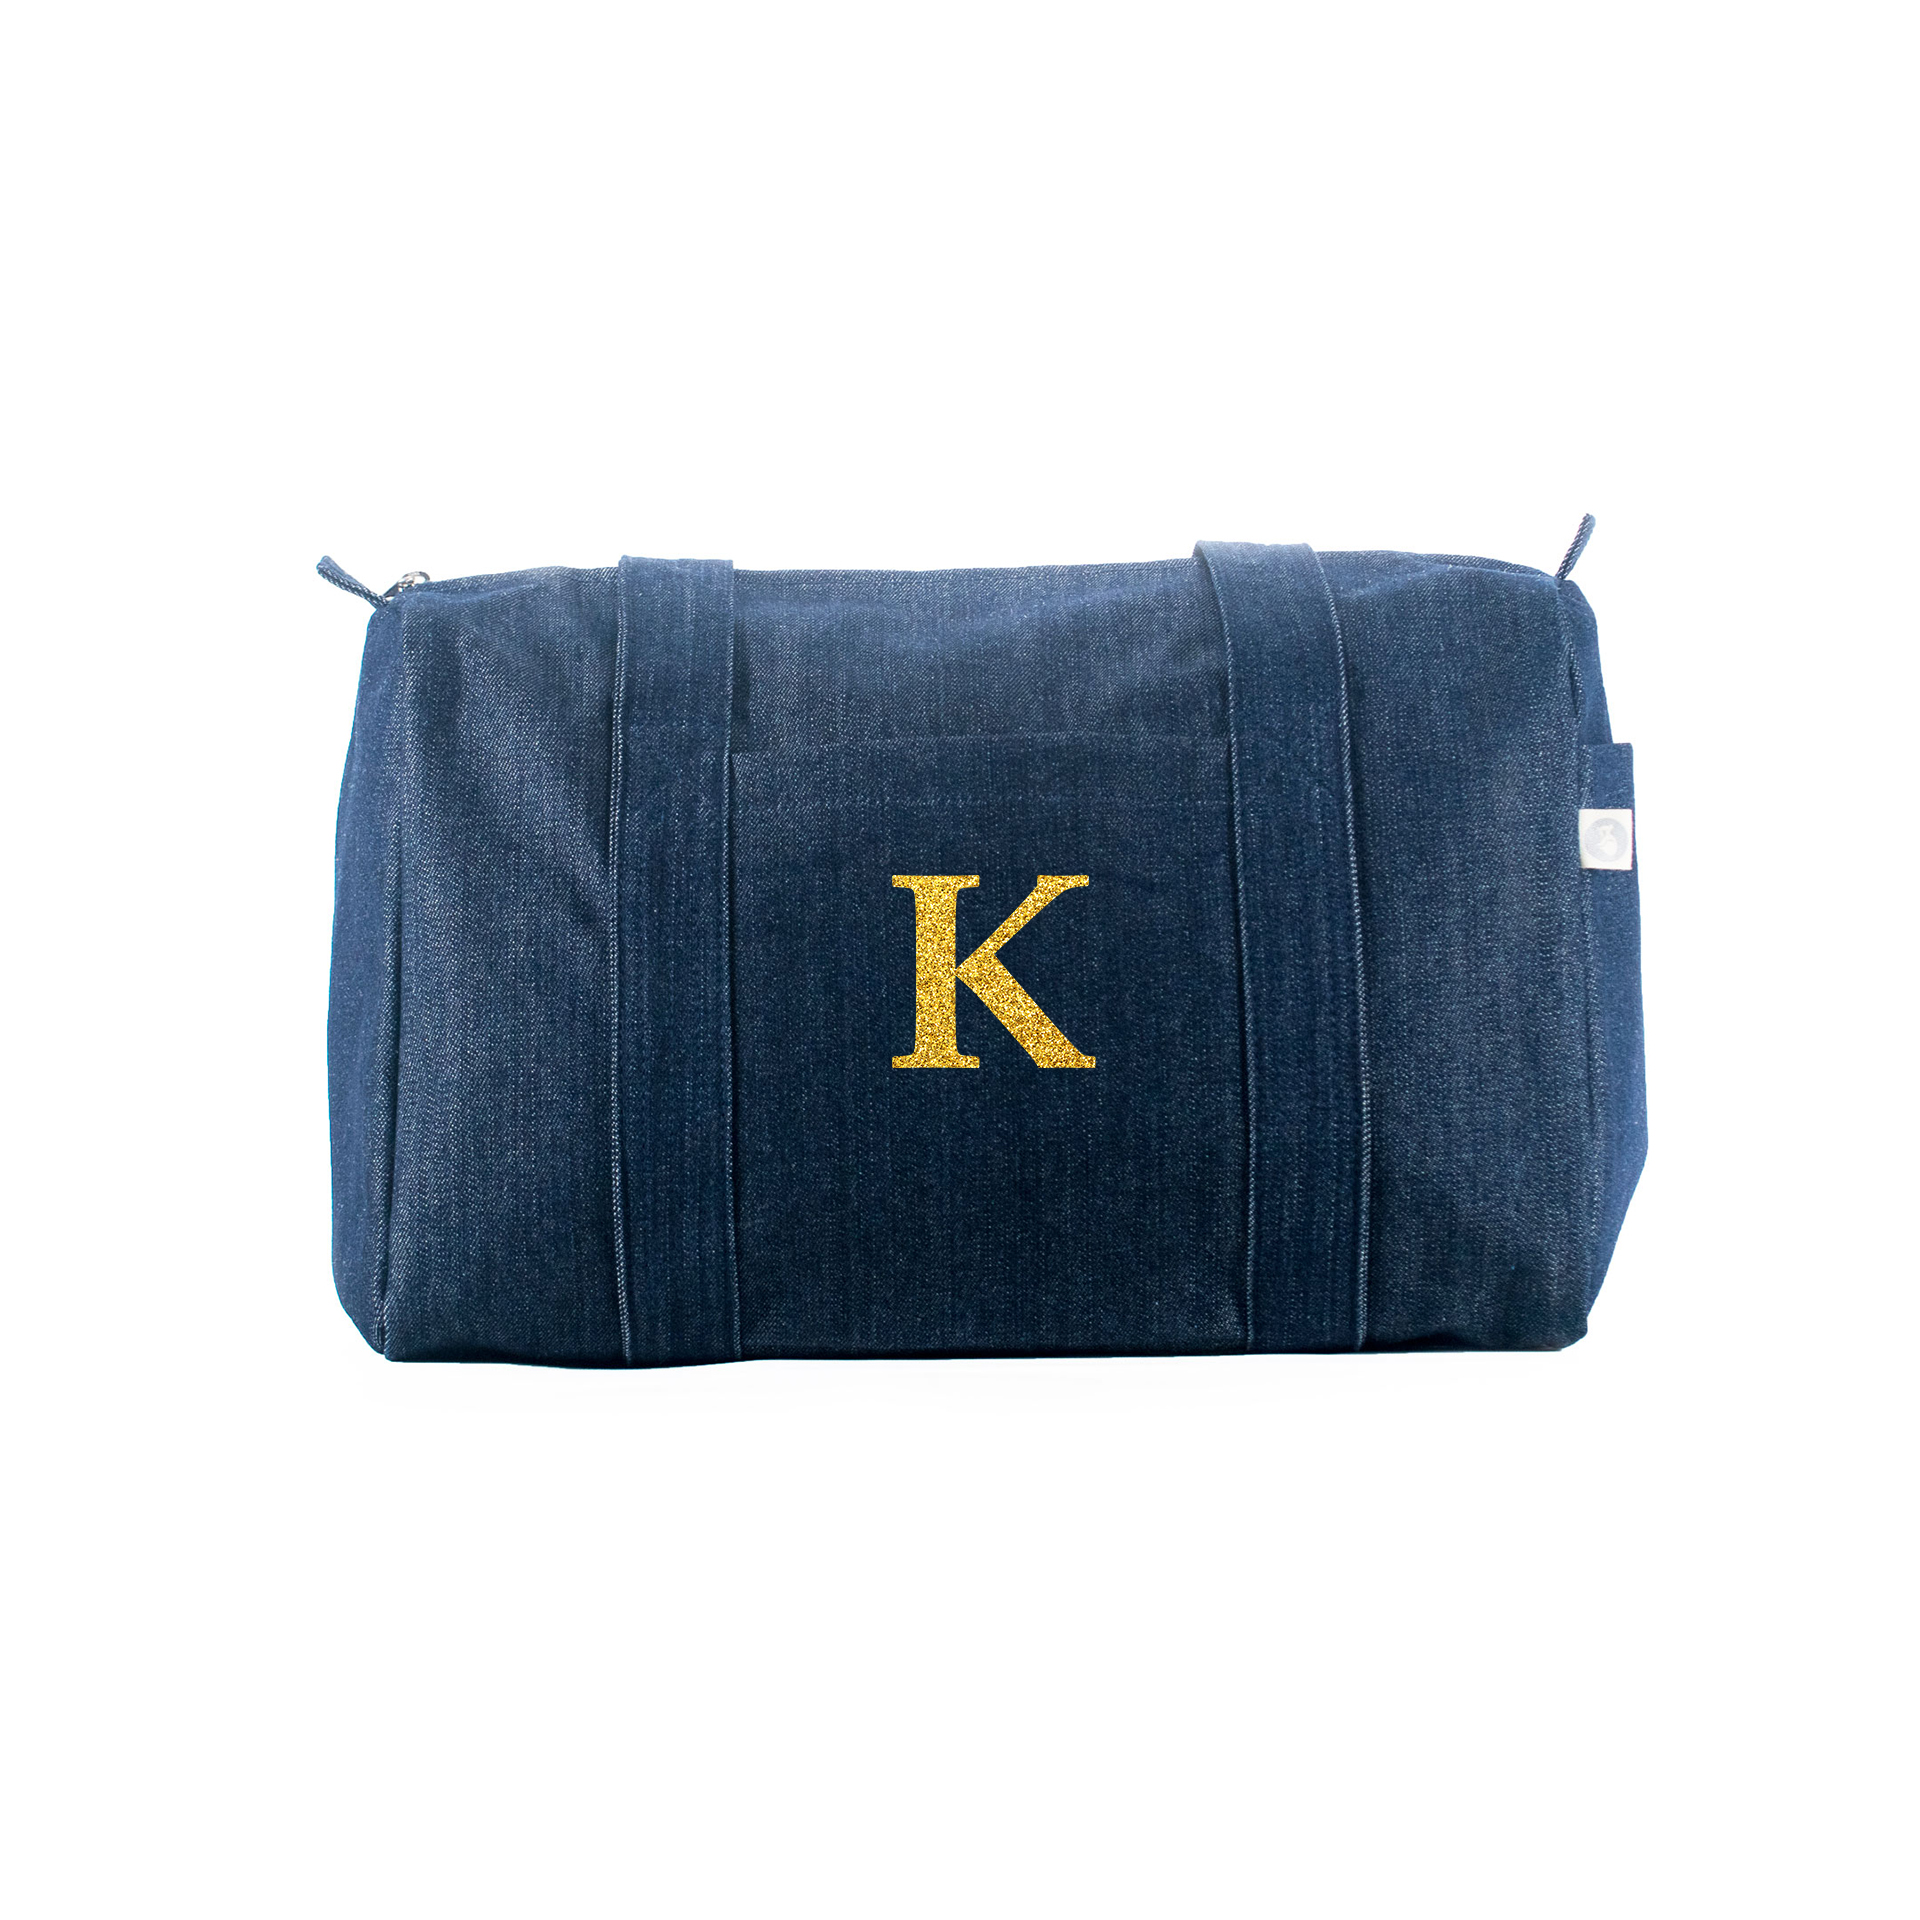 Small Denim Duffel: Monogram  Just $50.40 with code HOLIDAY